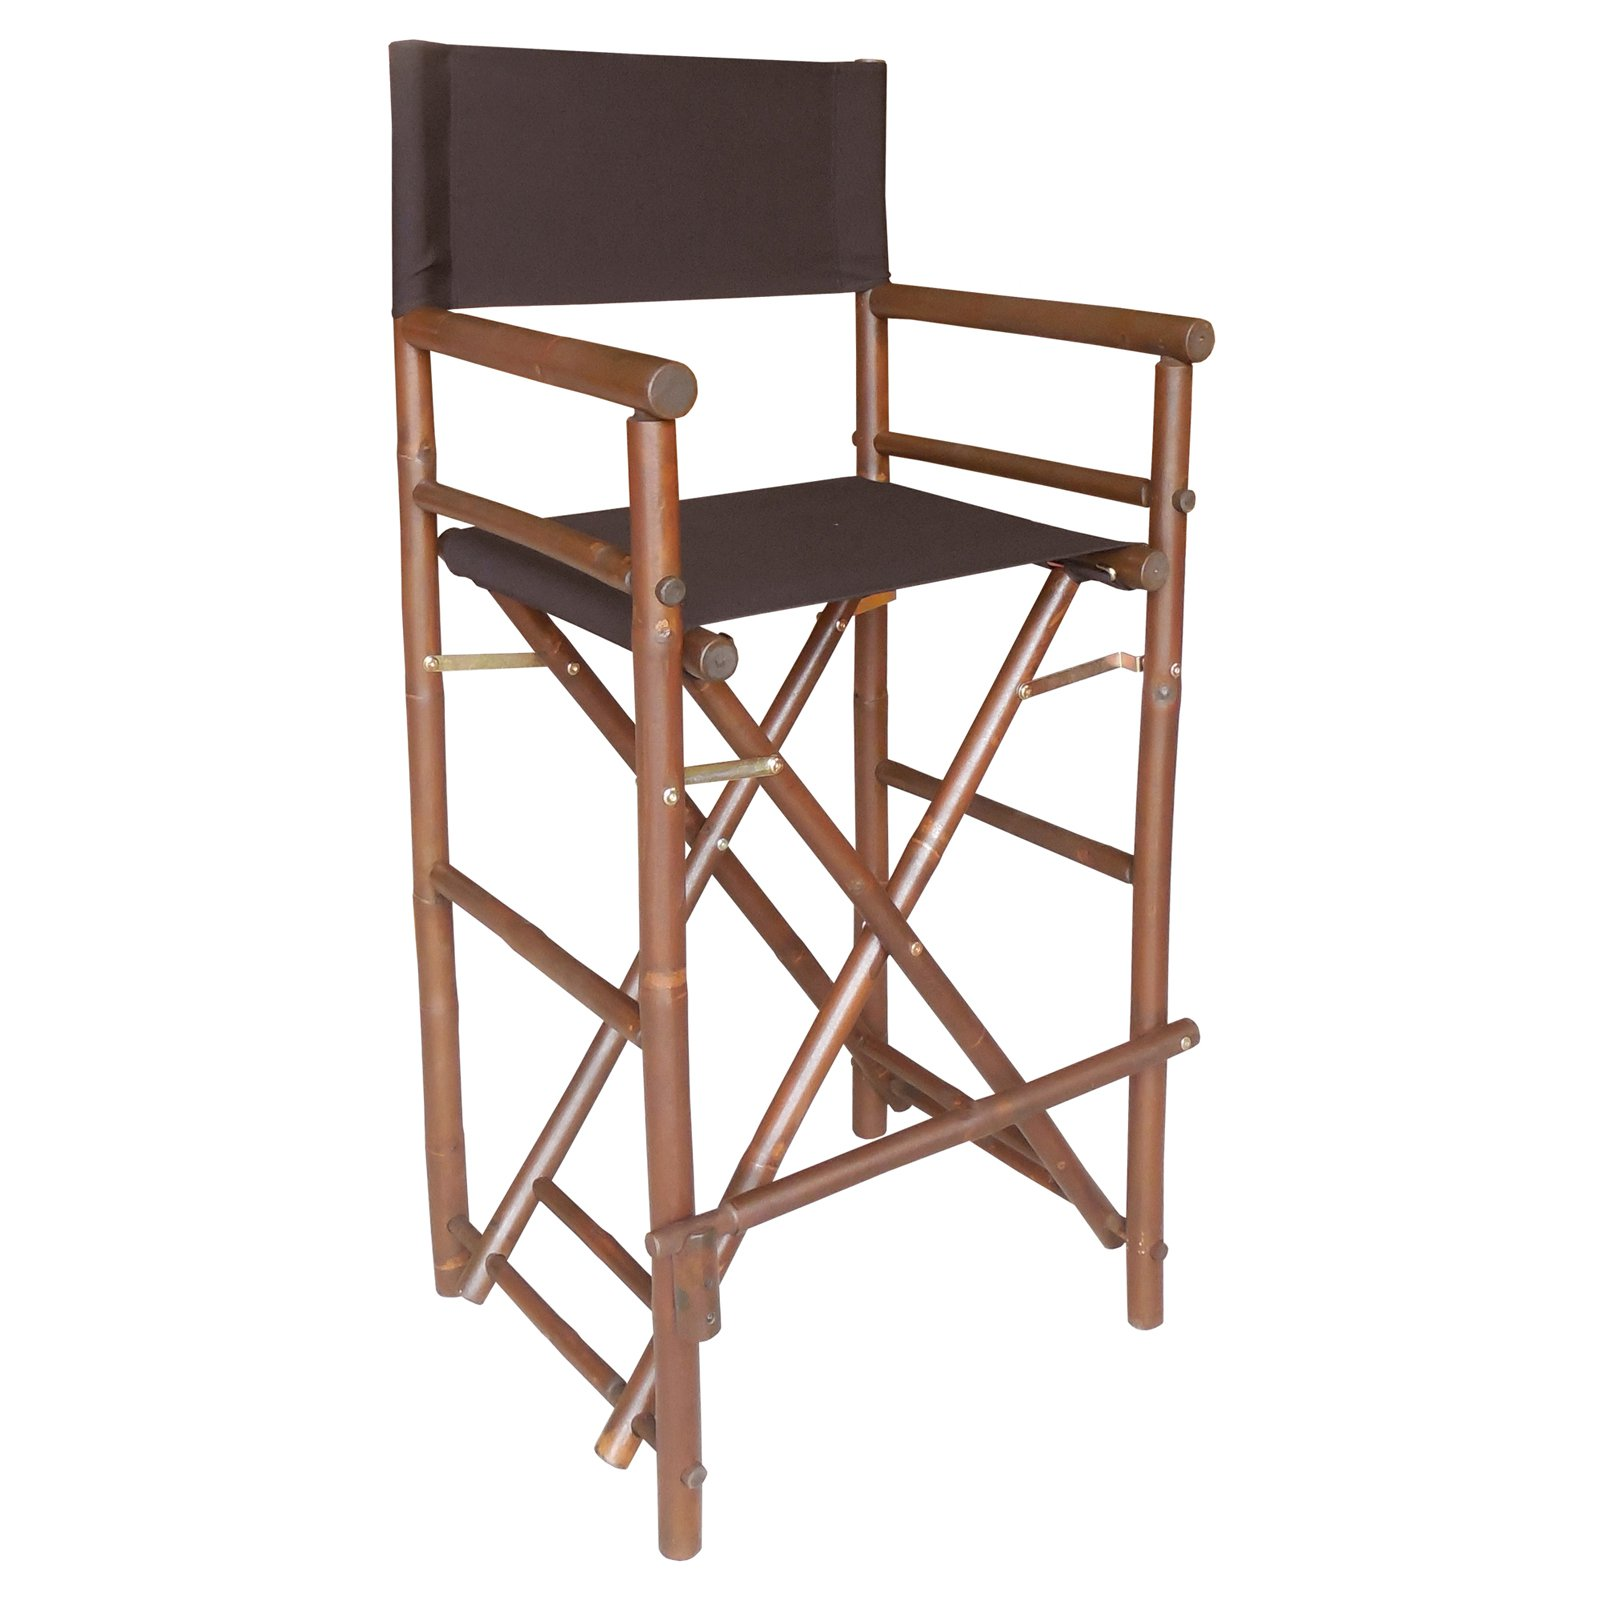 Attractive Directors Chair Replacement Canvas for Best Director Chair Ideas: Directors Chair Replacement Canvas | Folding Wooden Directors Chair | Folding Directors Chair Bar Height